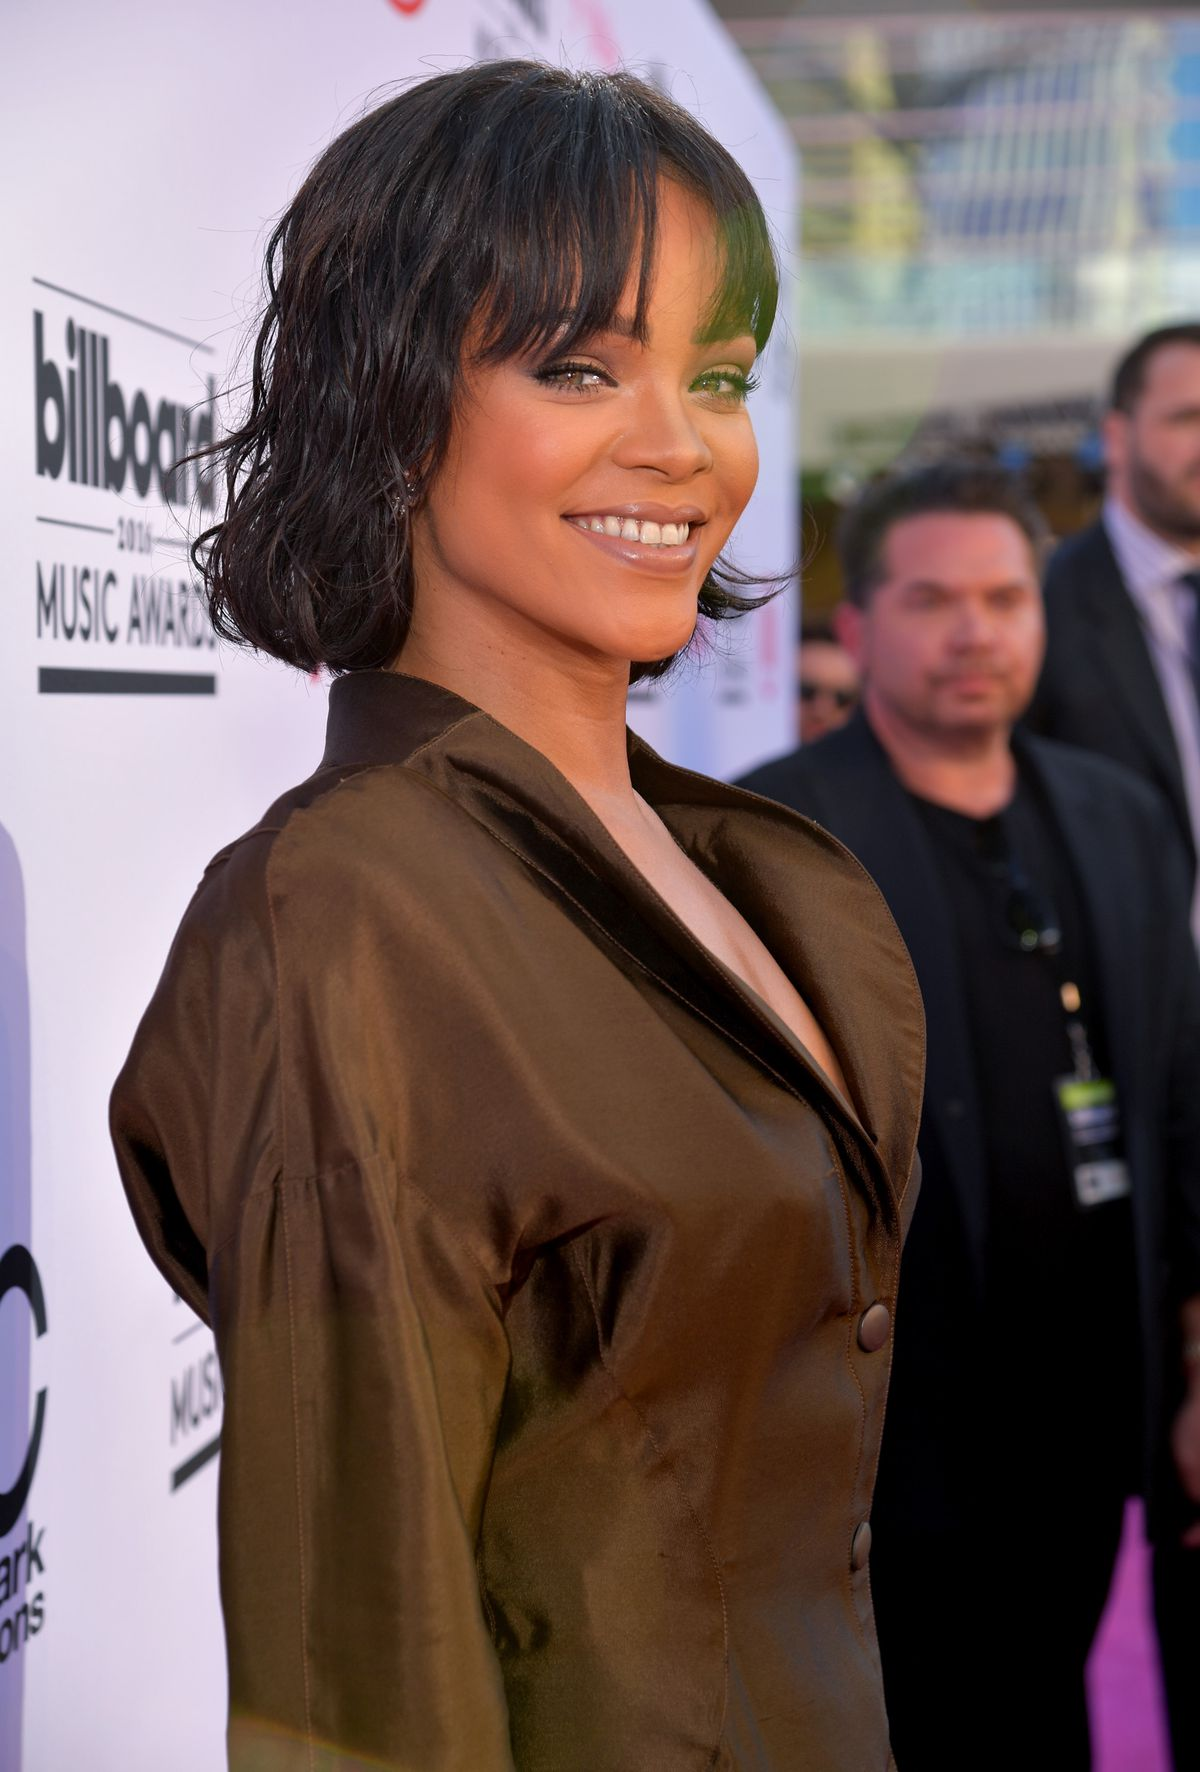 Rihanna's Is Channeling Your Mom in the 80s at the Billboard Awards